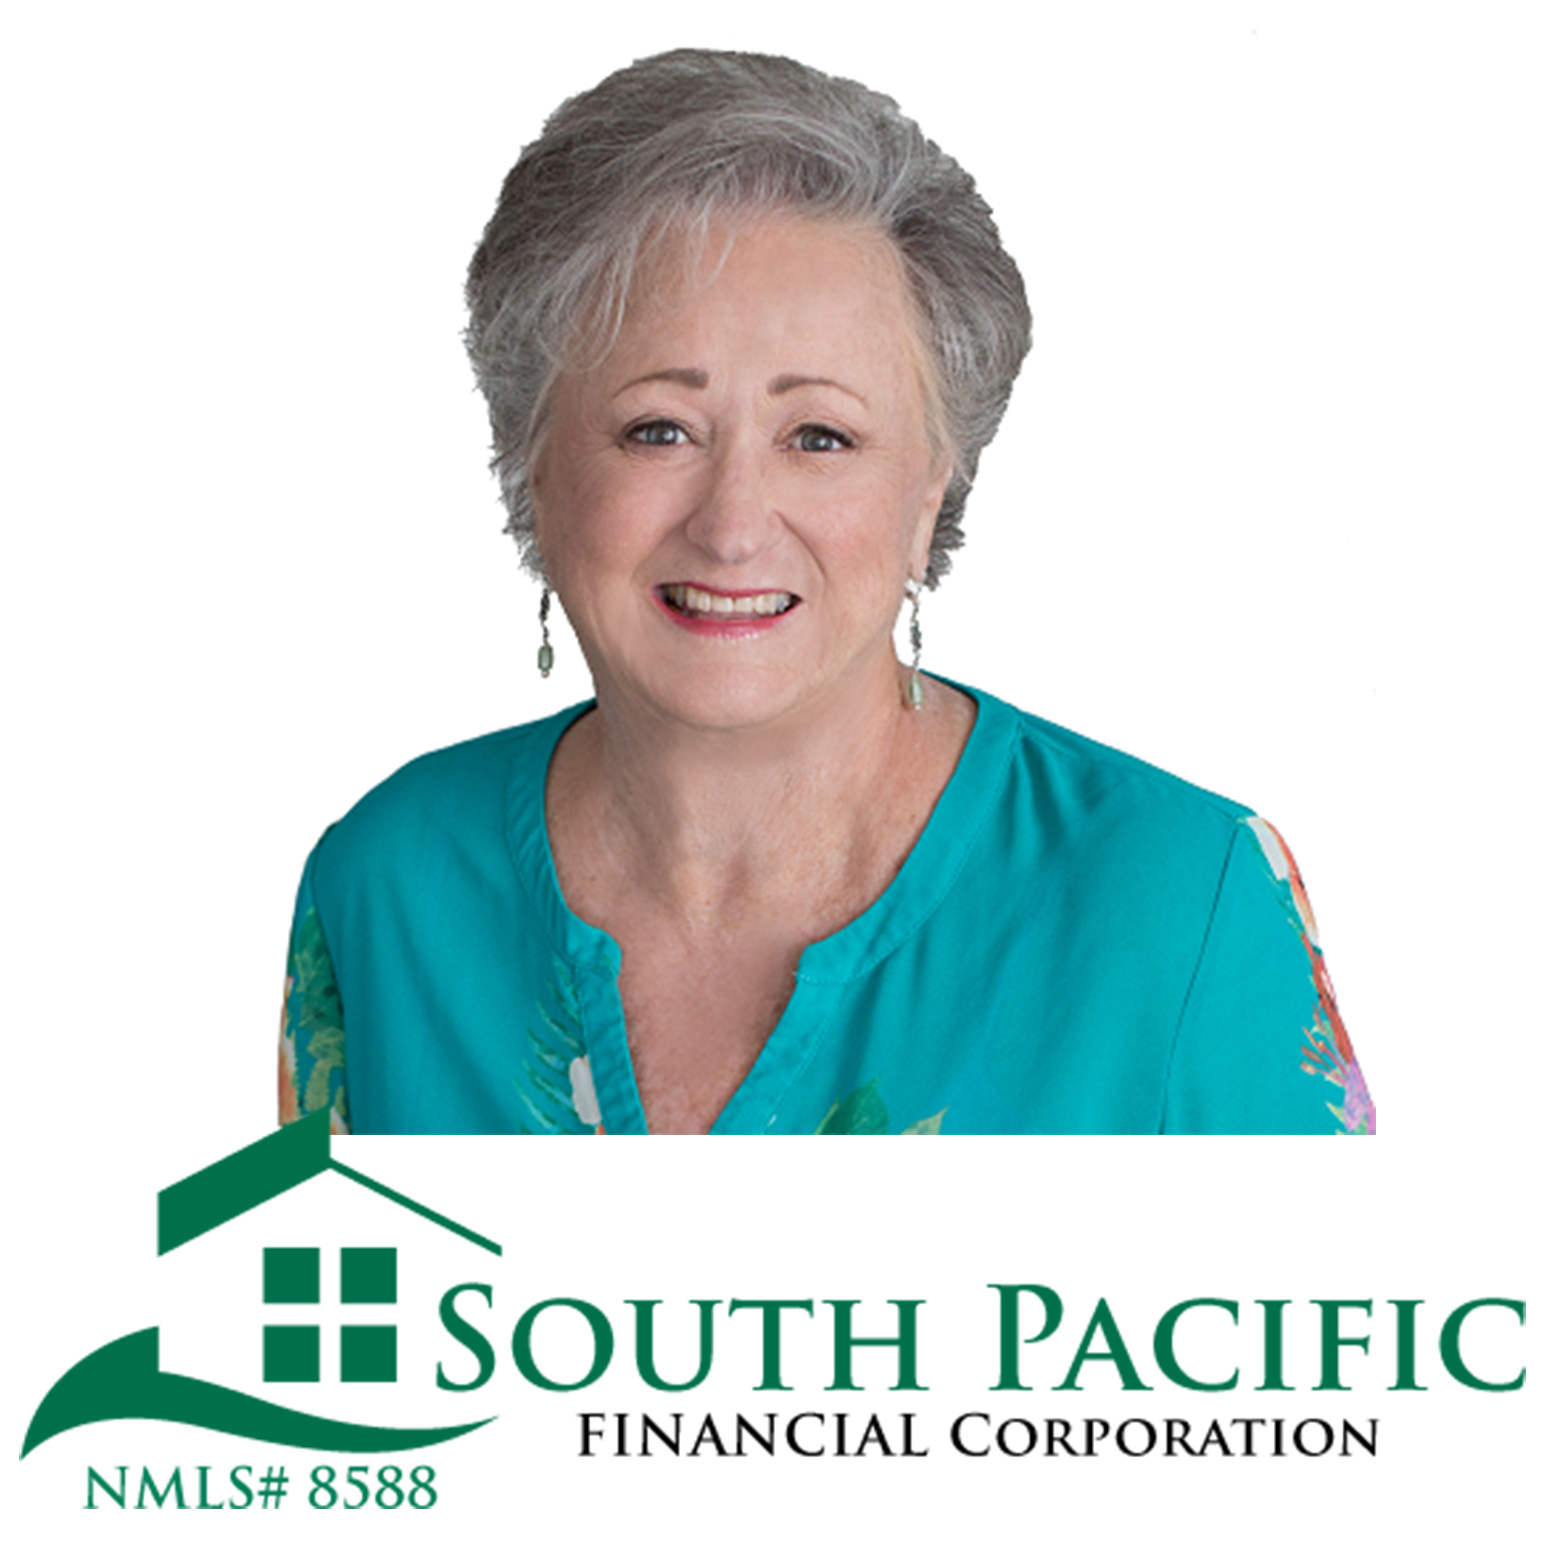 South Pacific Financial Corporation